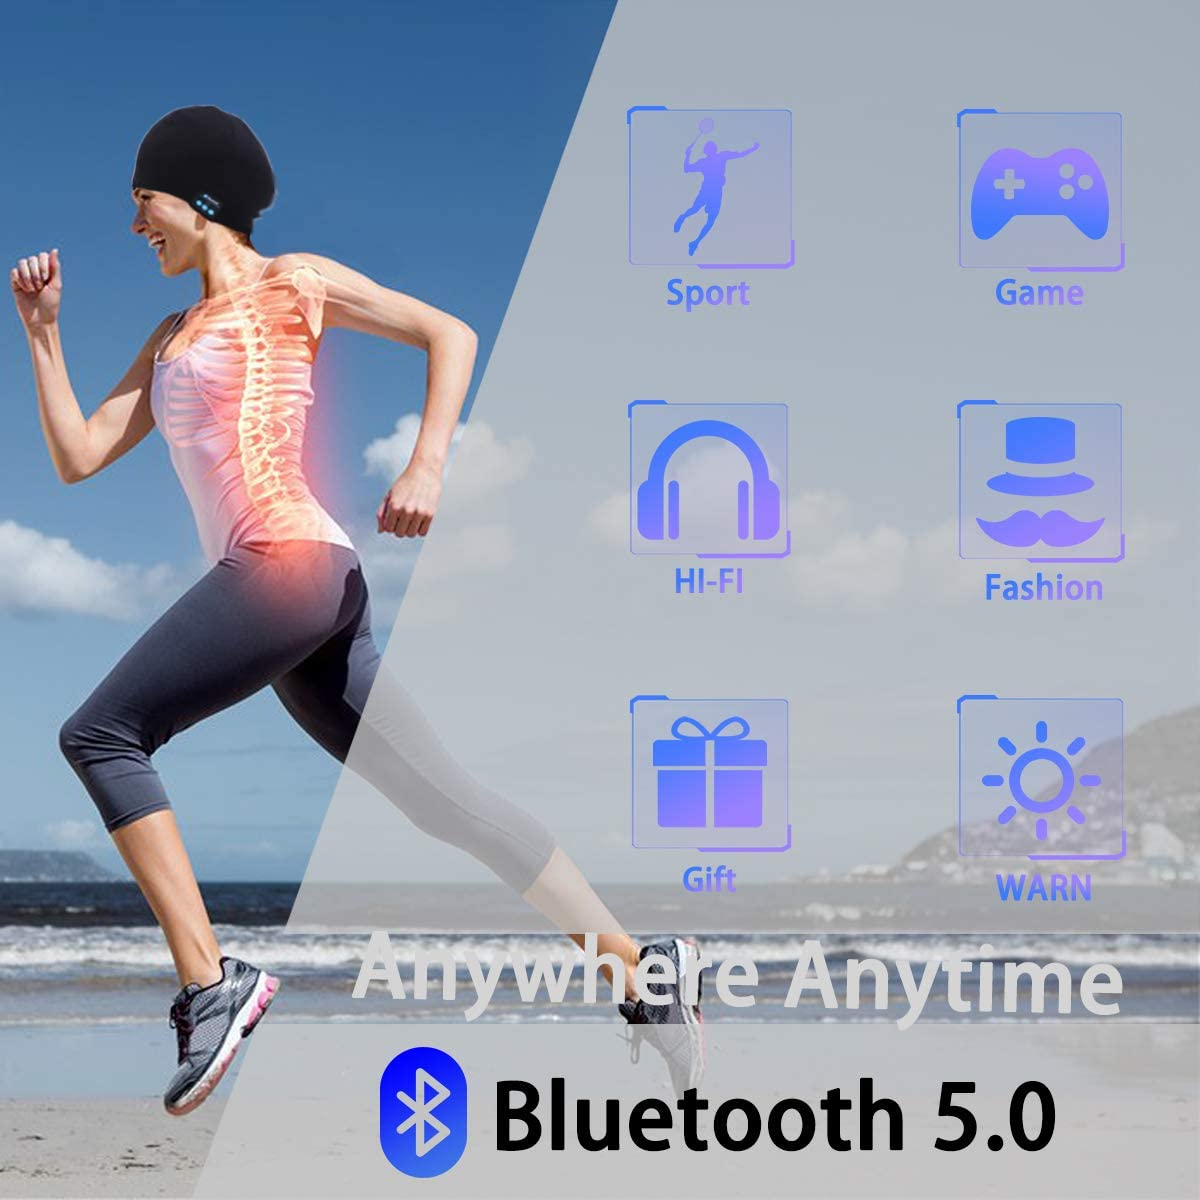 Electronic Gifts for Men NGC-C Bluetooth Beanie,Mens Gifts,Bluetooth Hat,Bluetooth Headphones,Running,Outdoor,Fashion Gifts for Women